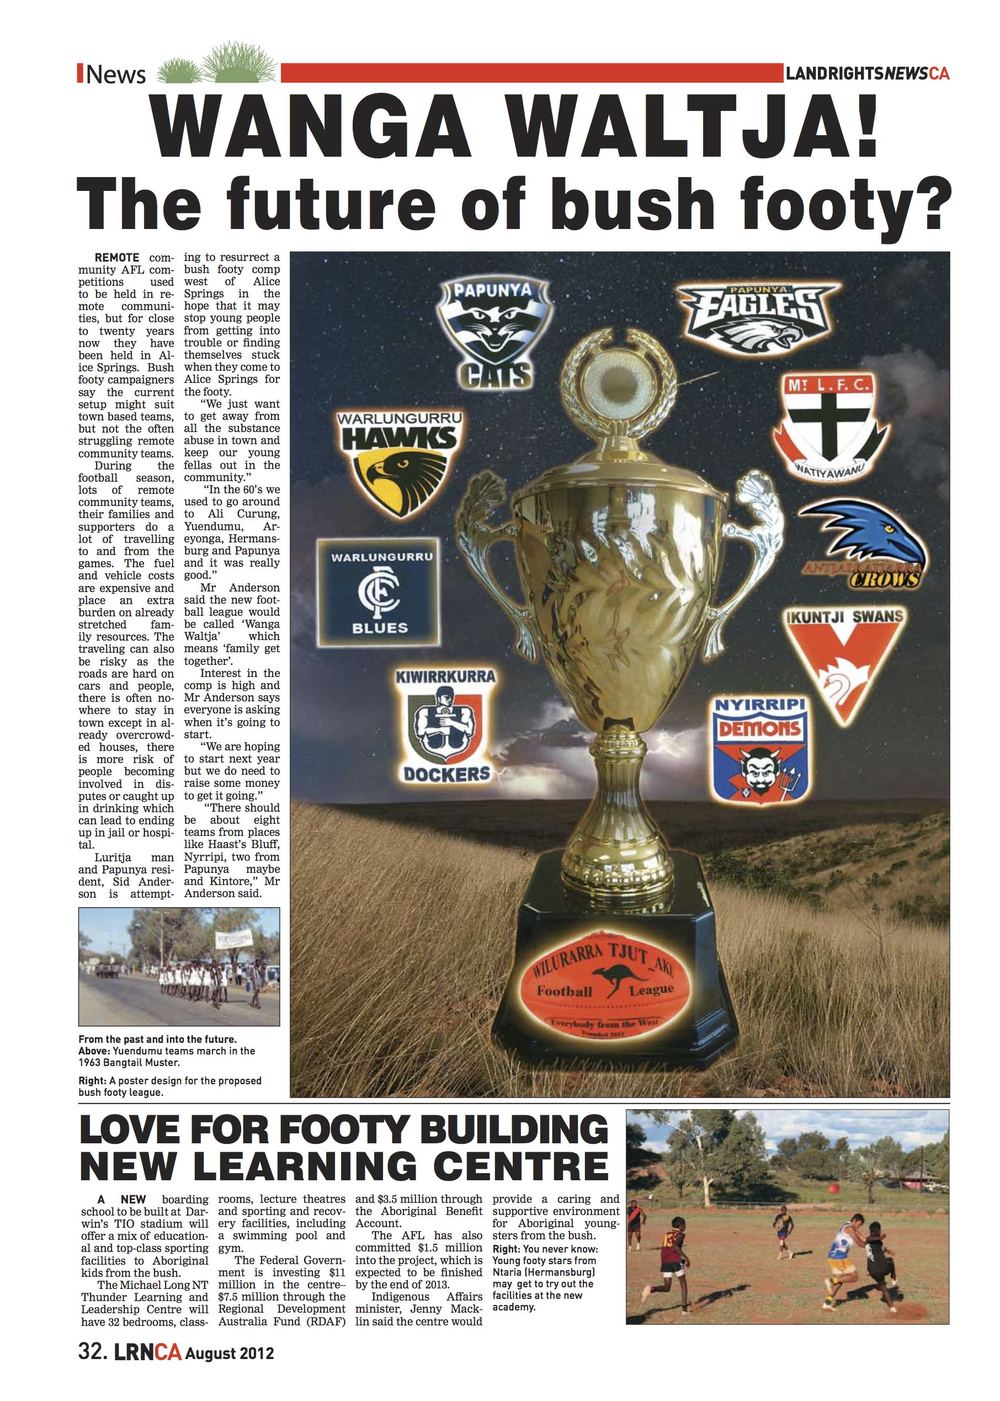 Article from Land Rights News about the bush footy comp